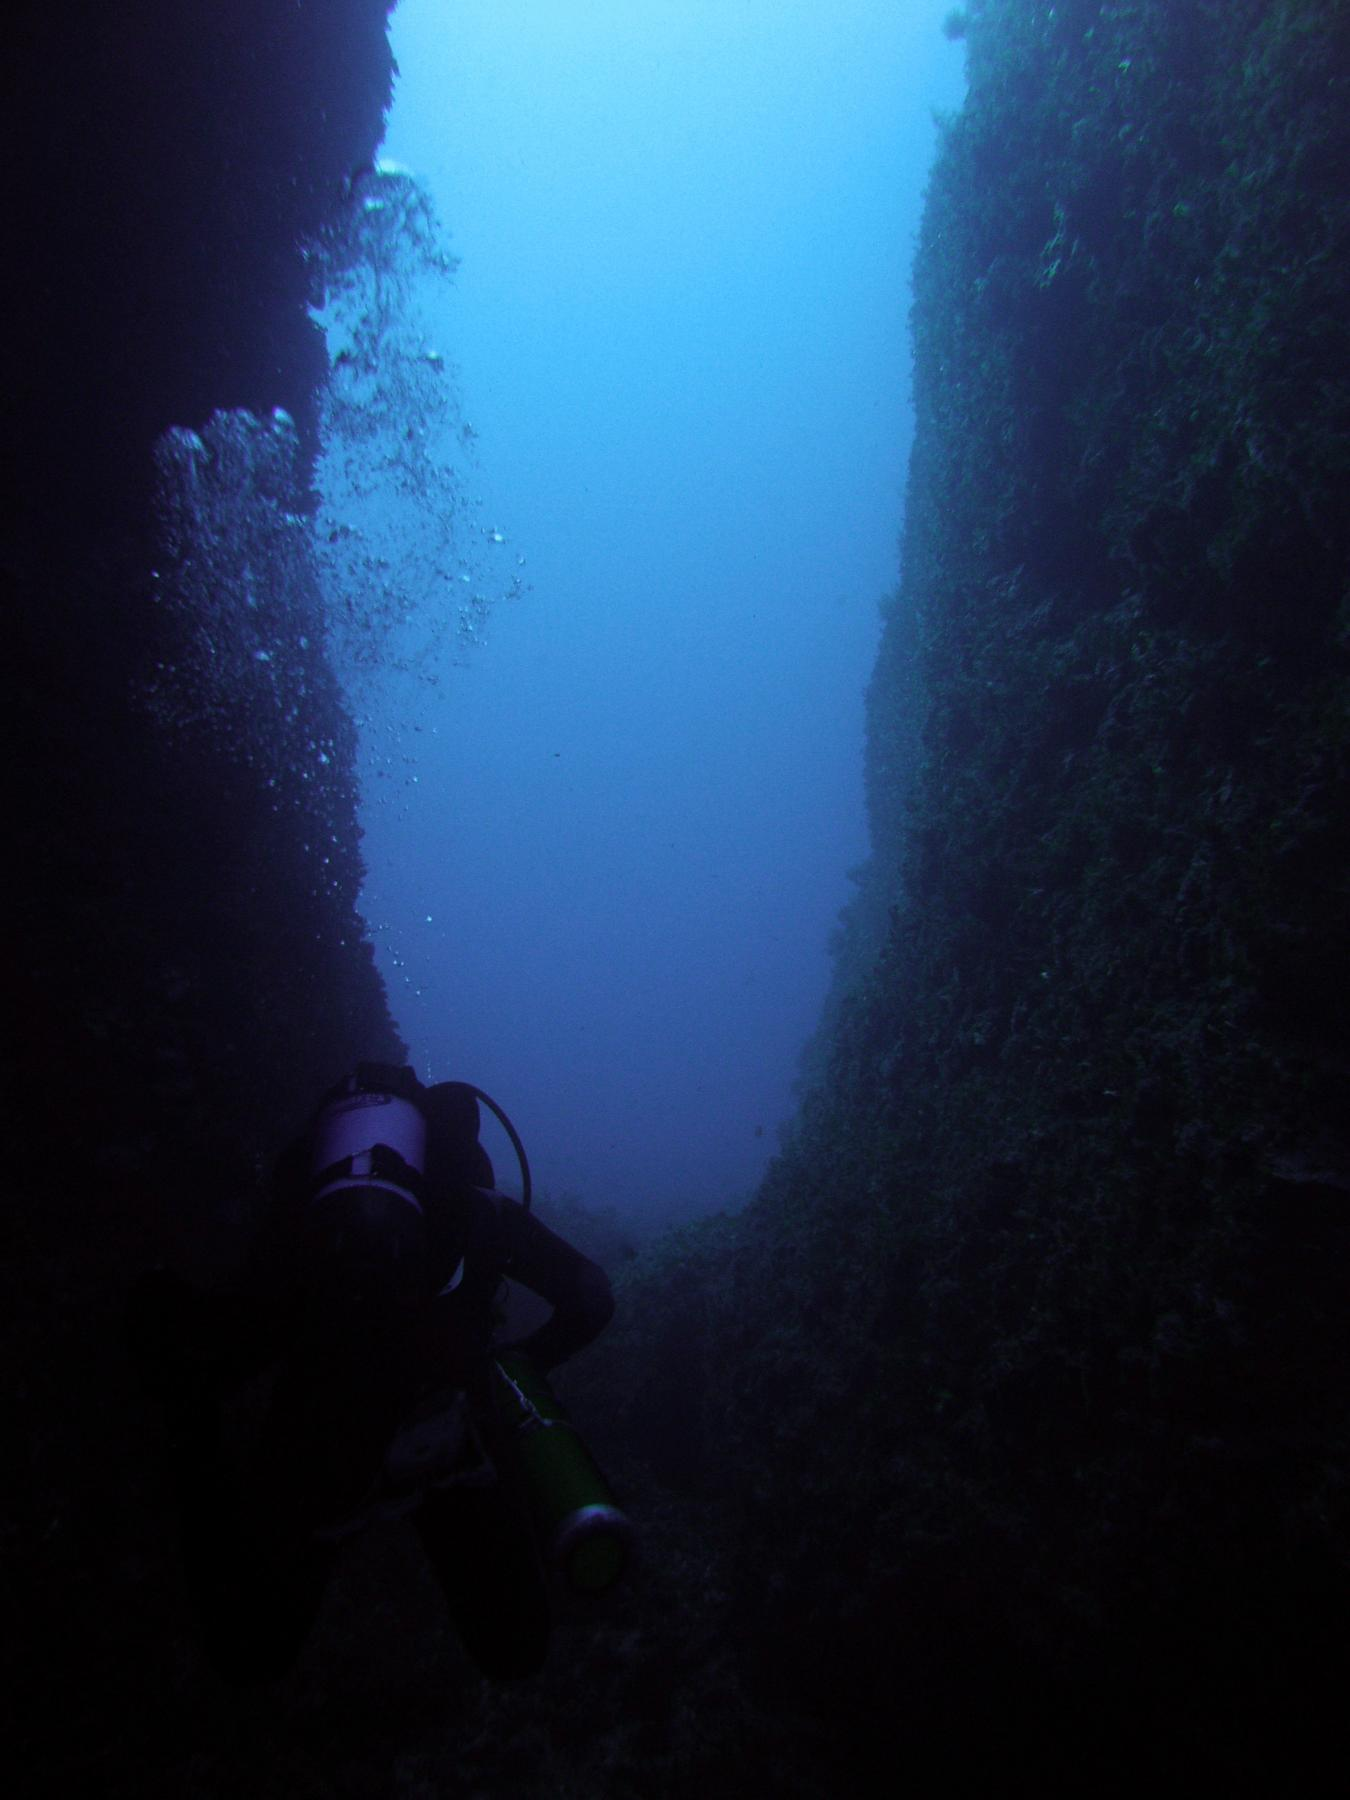 Diver at the Lantern Point